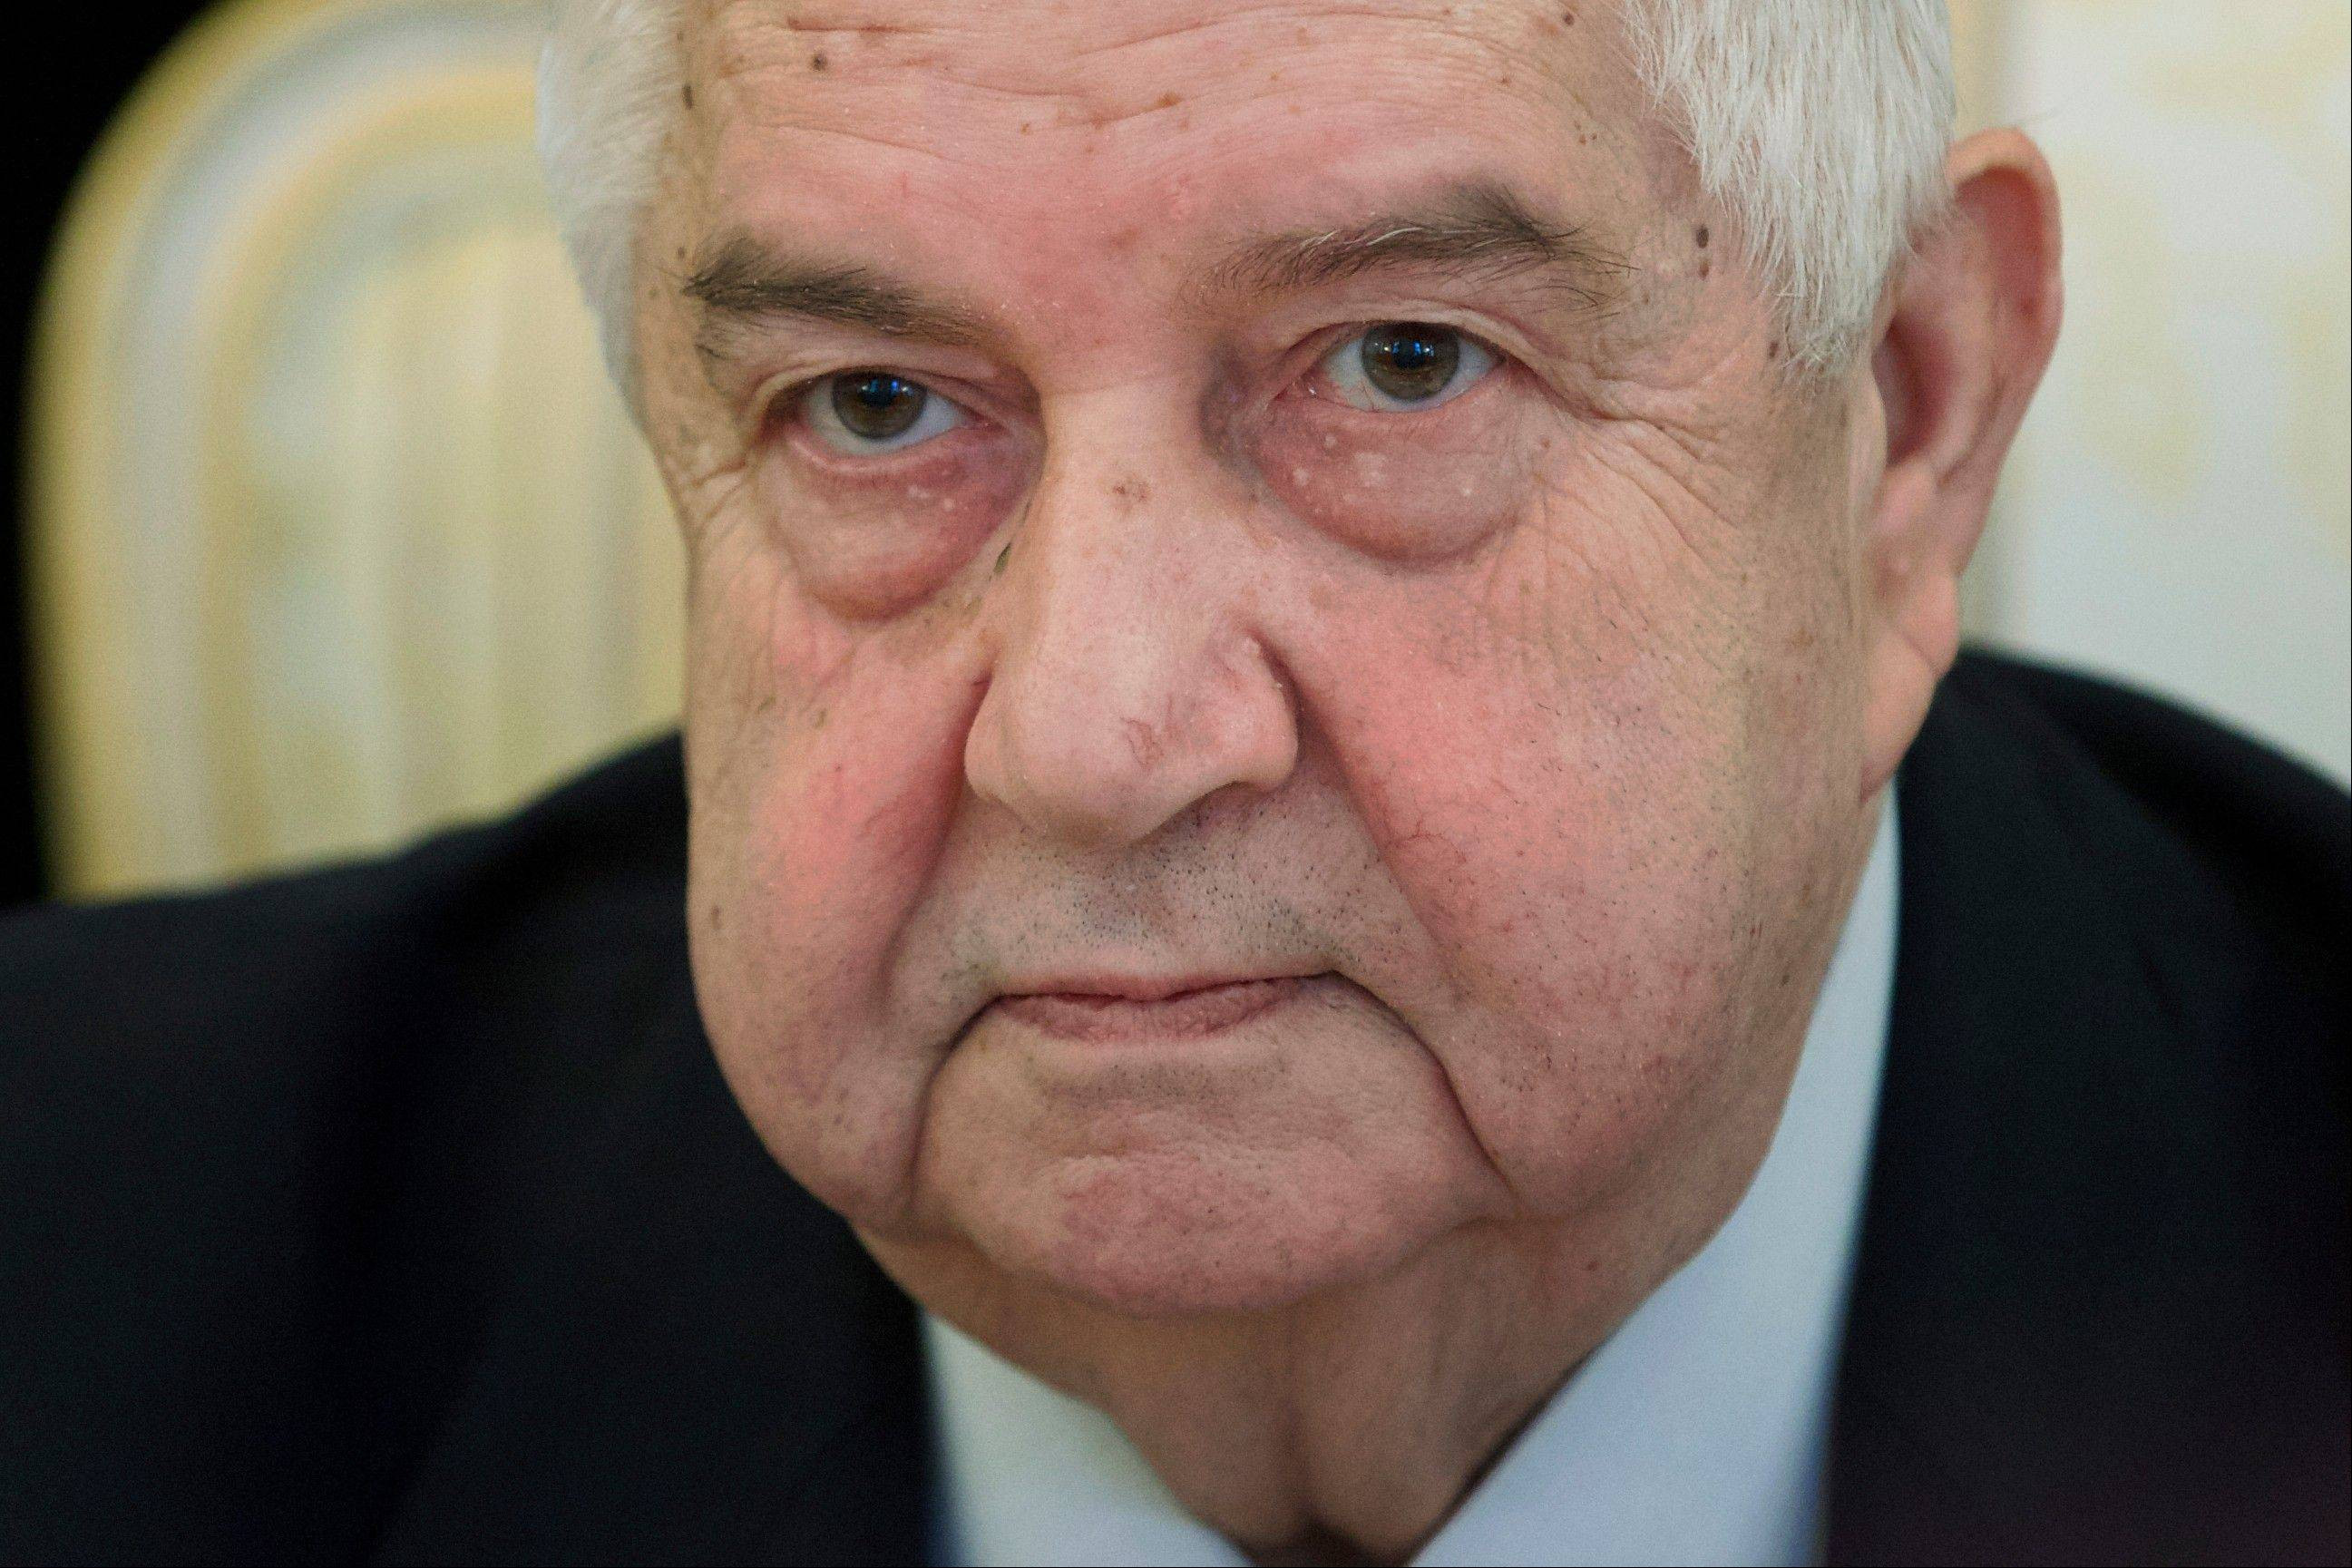 Syrian Foreign Minister Walid al-Moallem said Friday that his country is prepared to implement a cease-fire in the war-torn city of Aleppo and exchange detainees with the country's opposition forces as confidence building measures ahead of a peace conference opening next week in Switzerland.